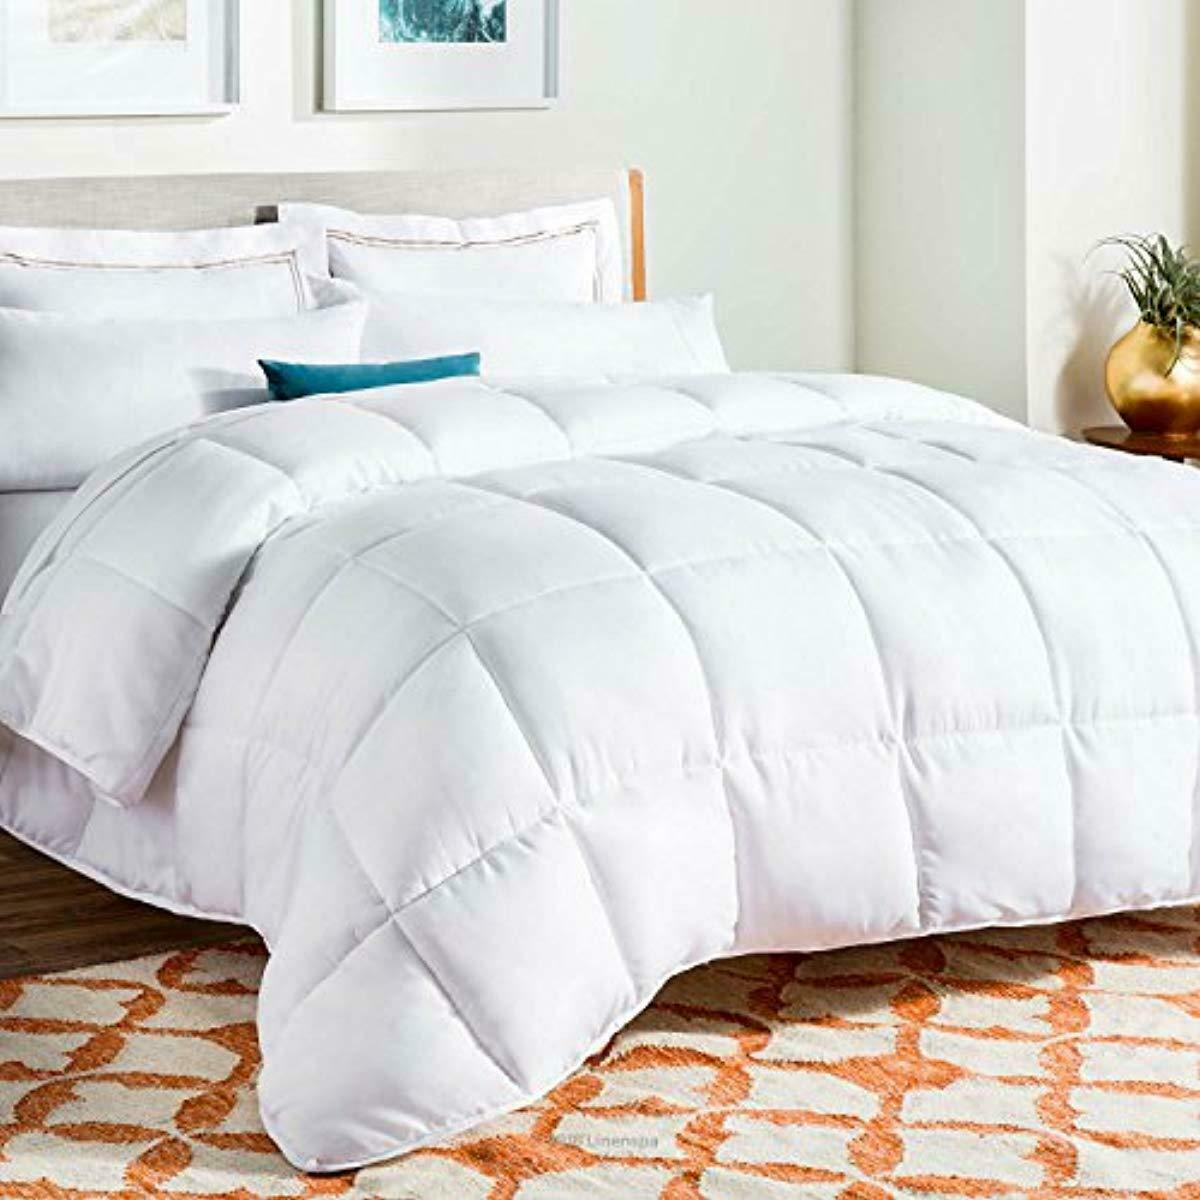 Linenspa All-Season Down Alternative Quilted Comforter - Hypoallergenic - Plush